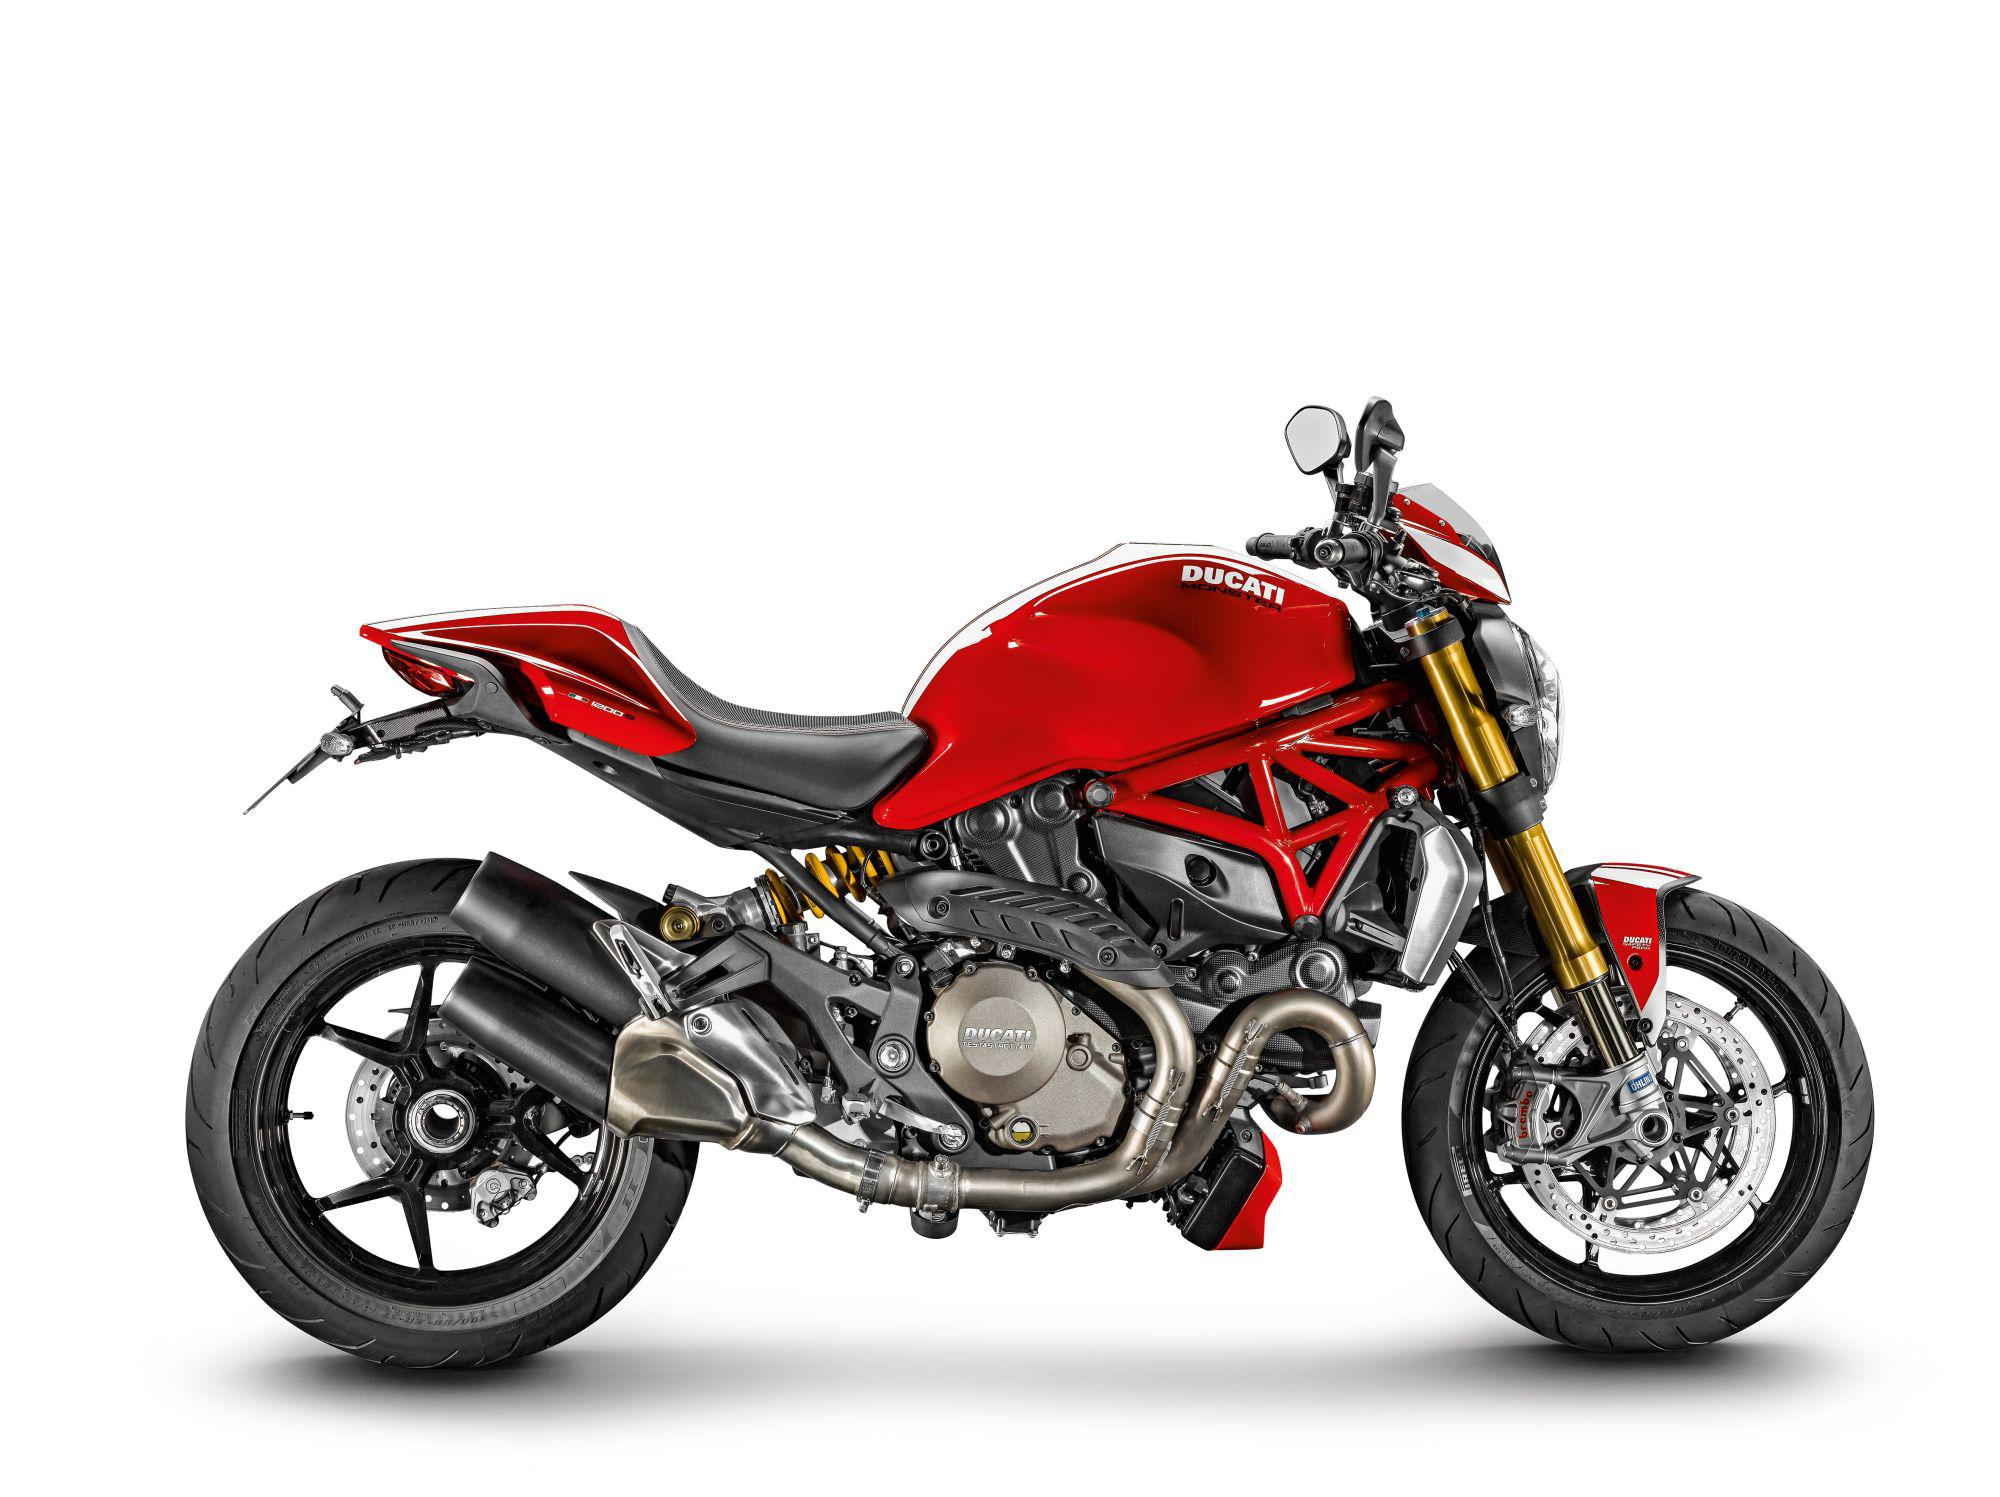 Top Speed Of Ducati Monster